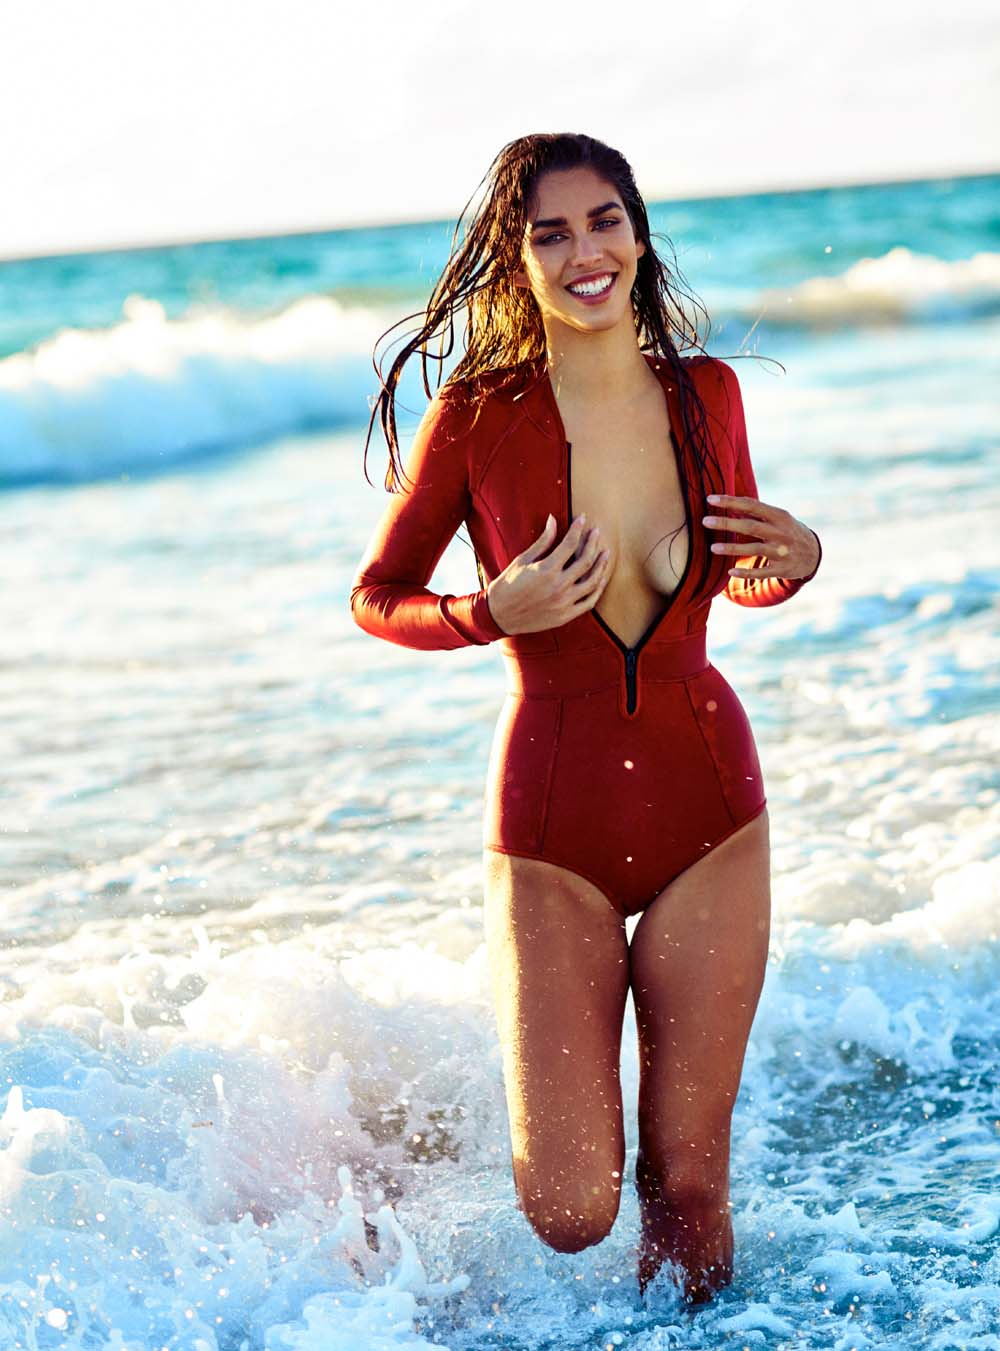 Balistarz-model-Samantha-Garza-potrait-shoot-with-a-red-swimsuit-running-along-with-the-waves